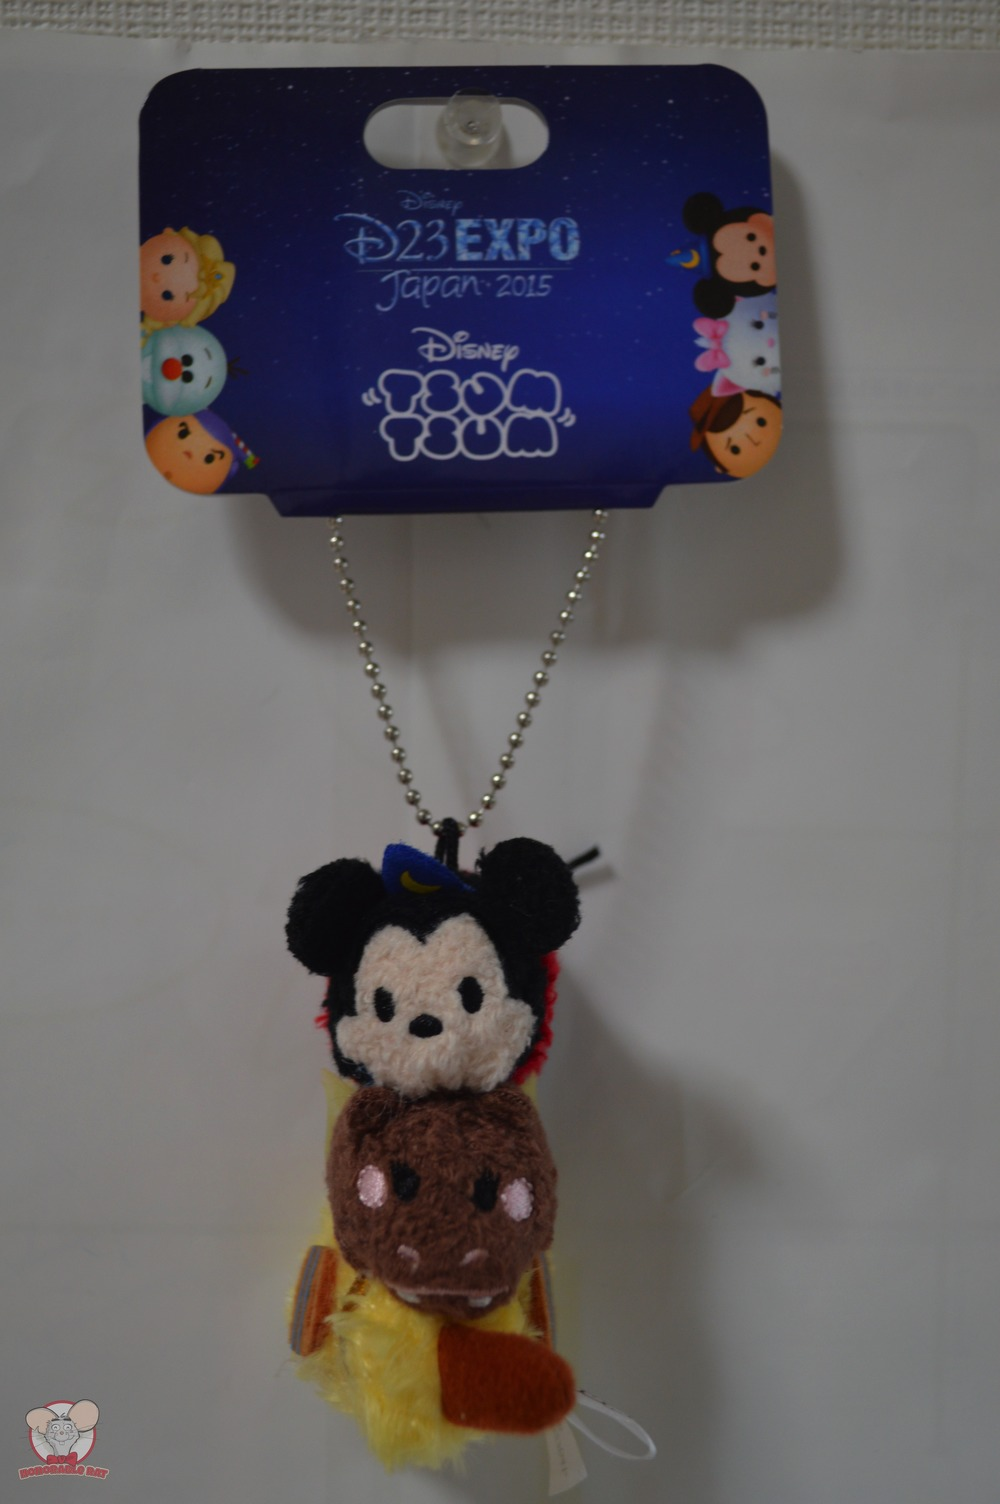 Tsum Tsum Fantasia Key Chain